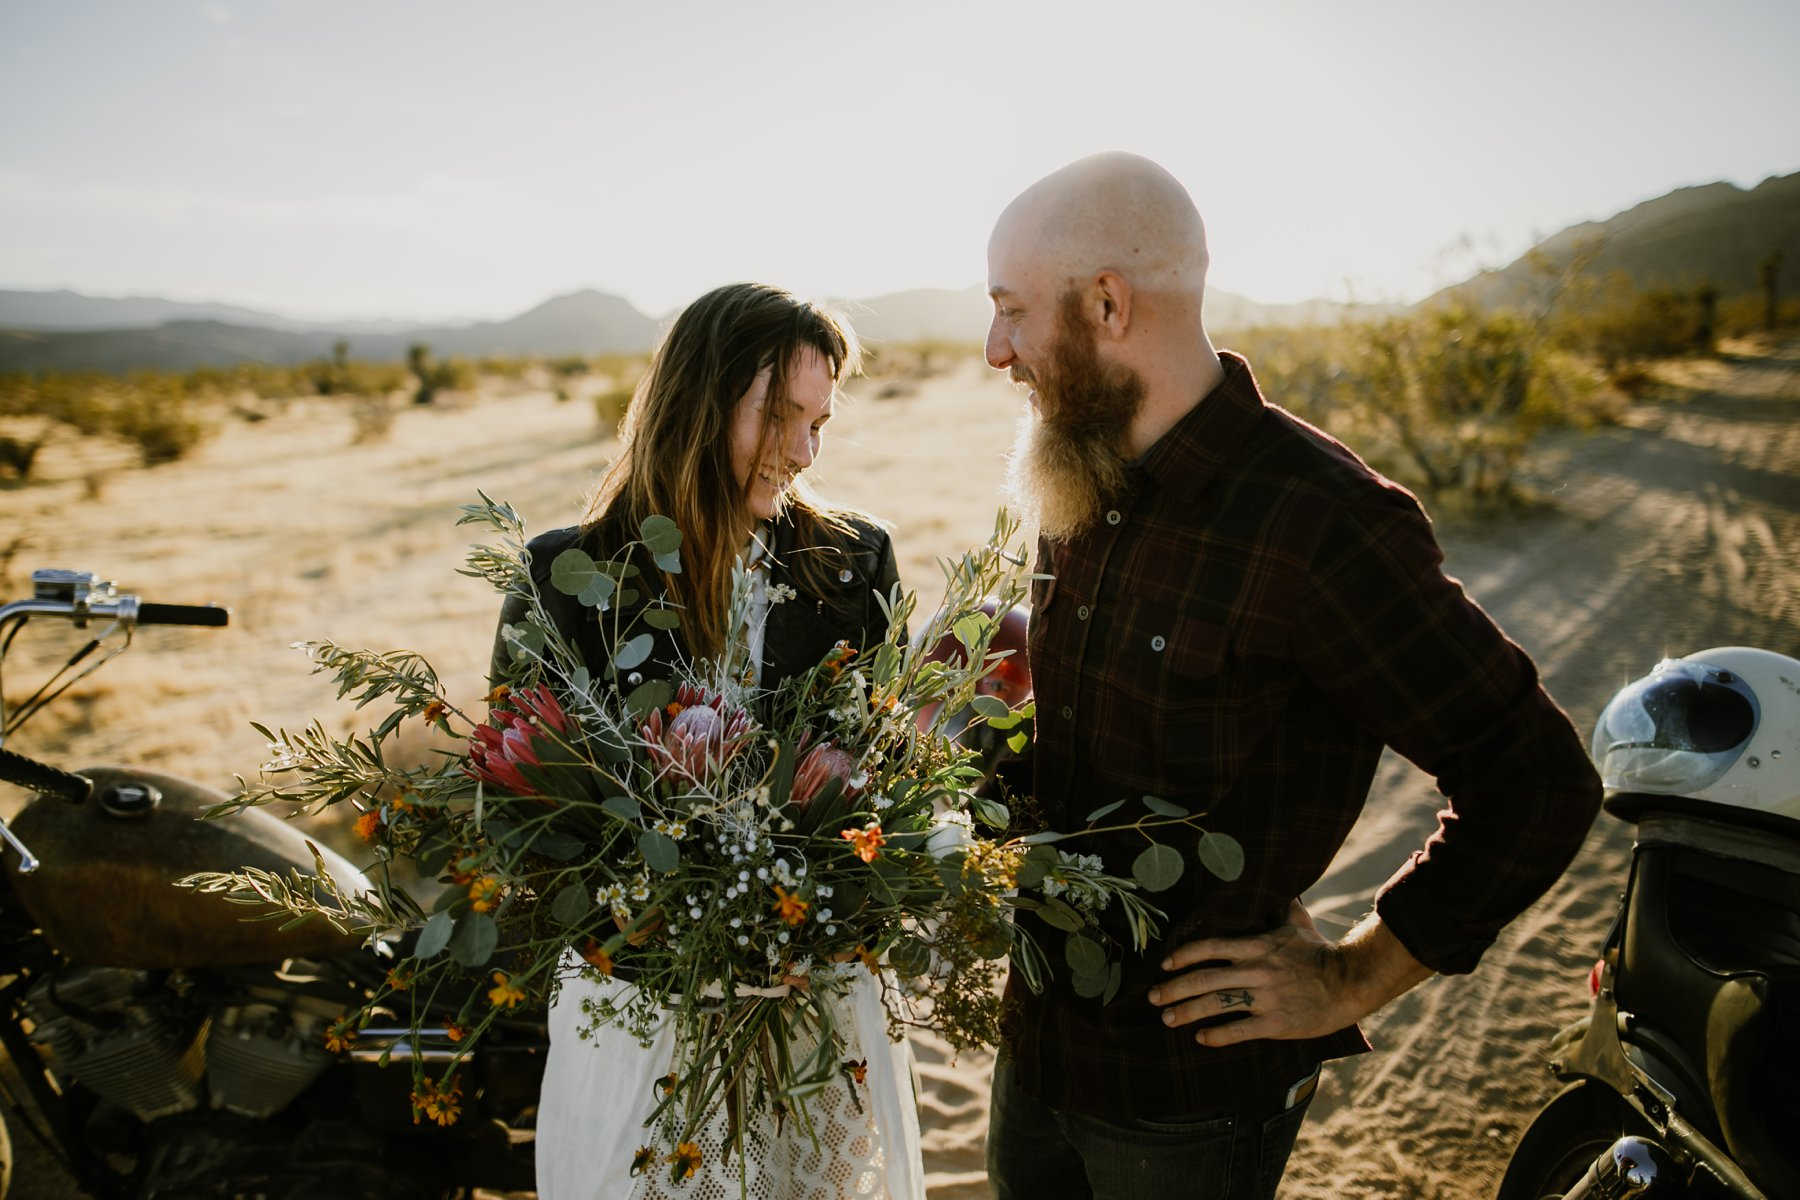 motorcycle-elopement-in-joshua-tree_0001.jpg